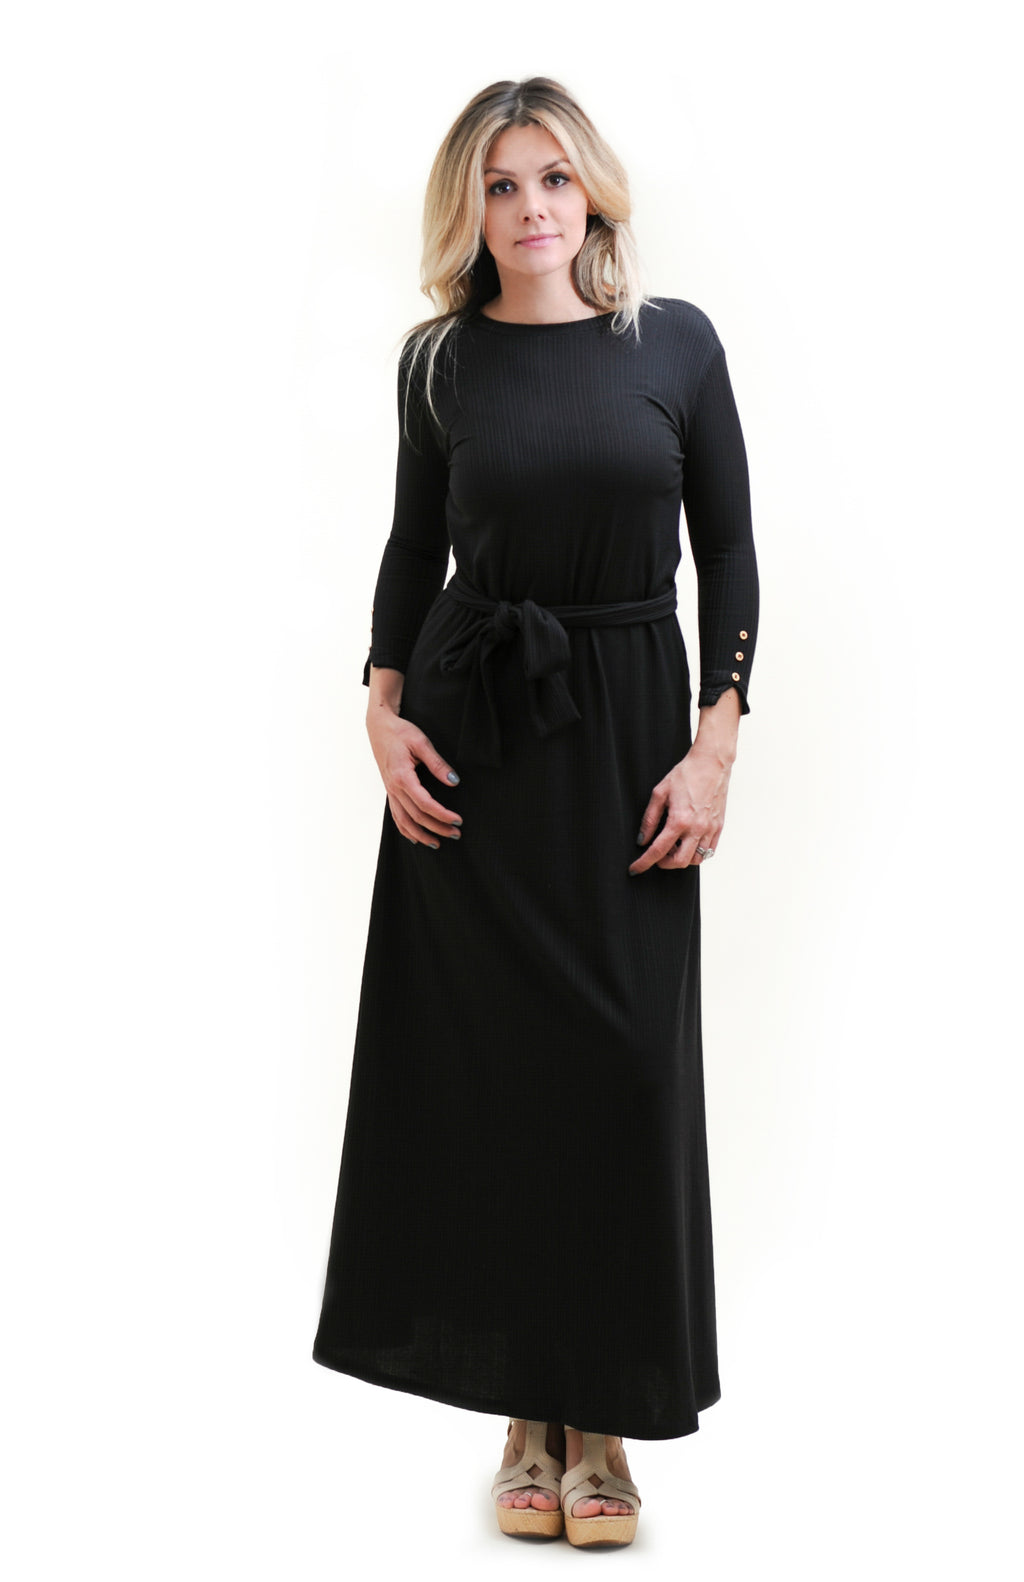 Black Ribbed Maxi Dress with gold buttons nursing friendly